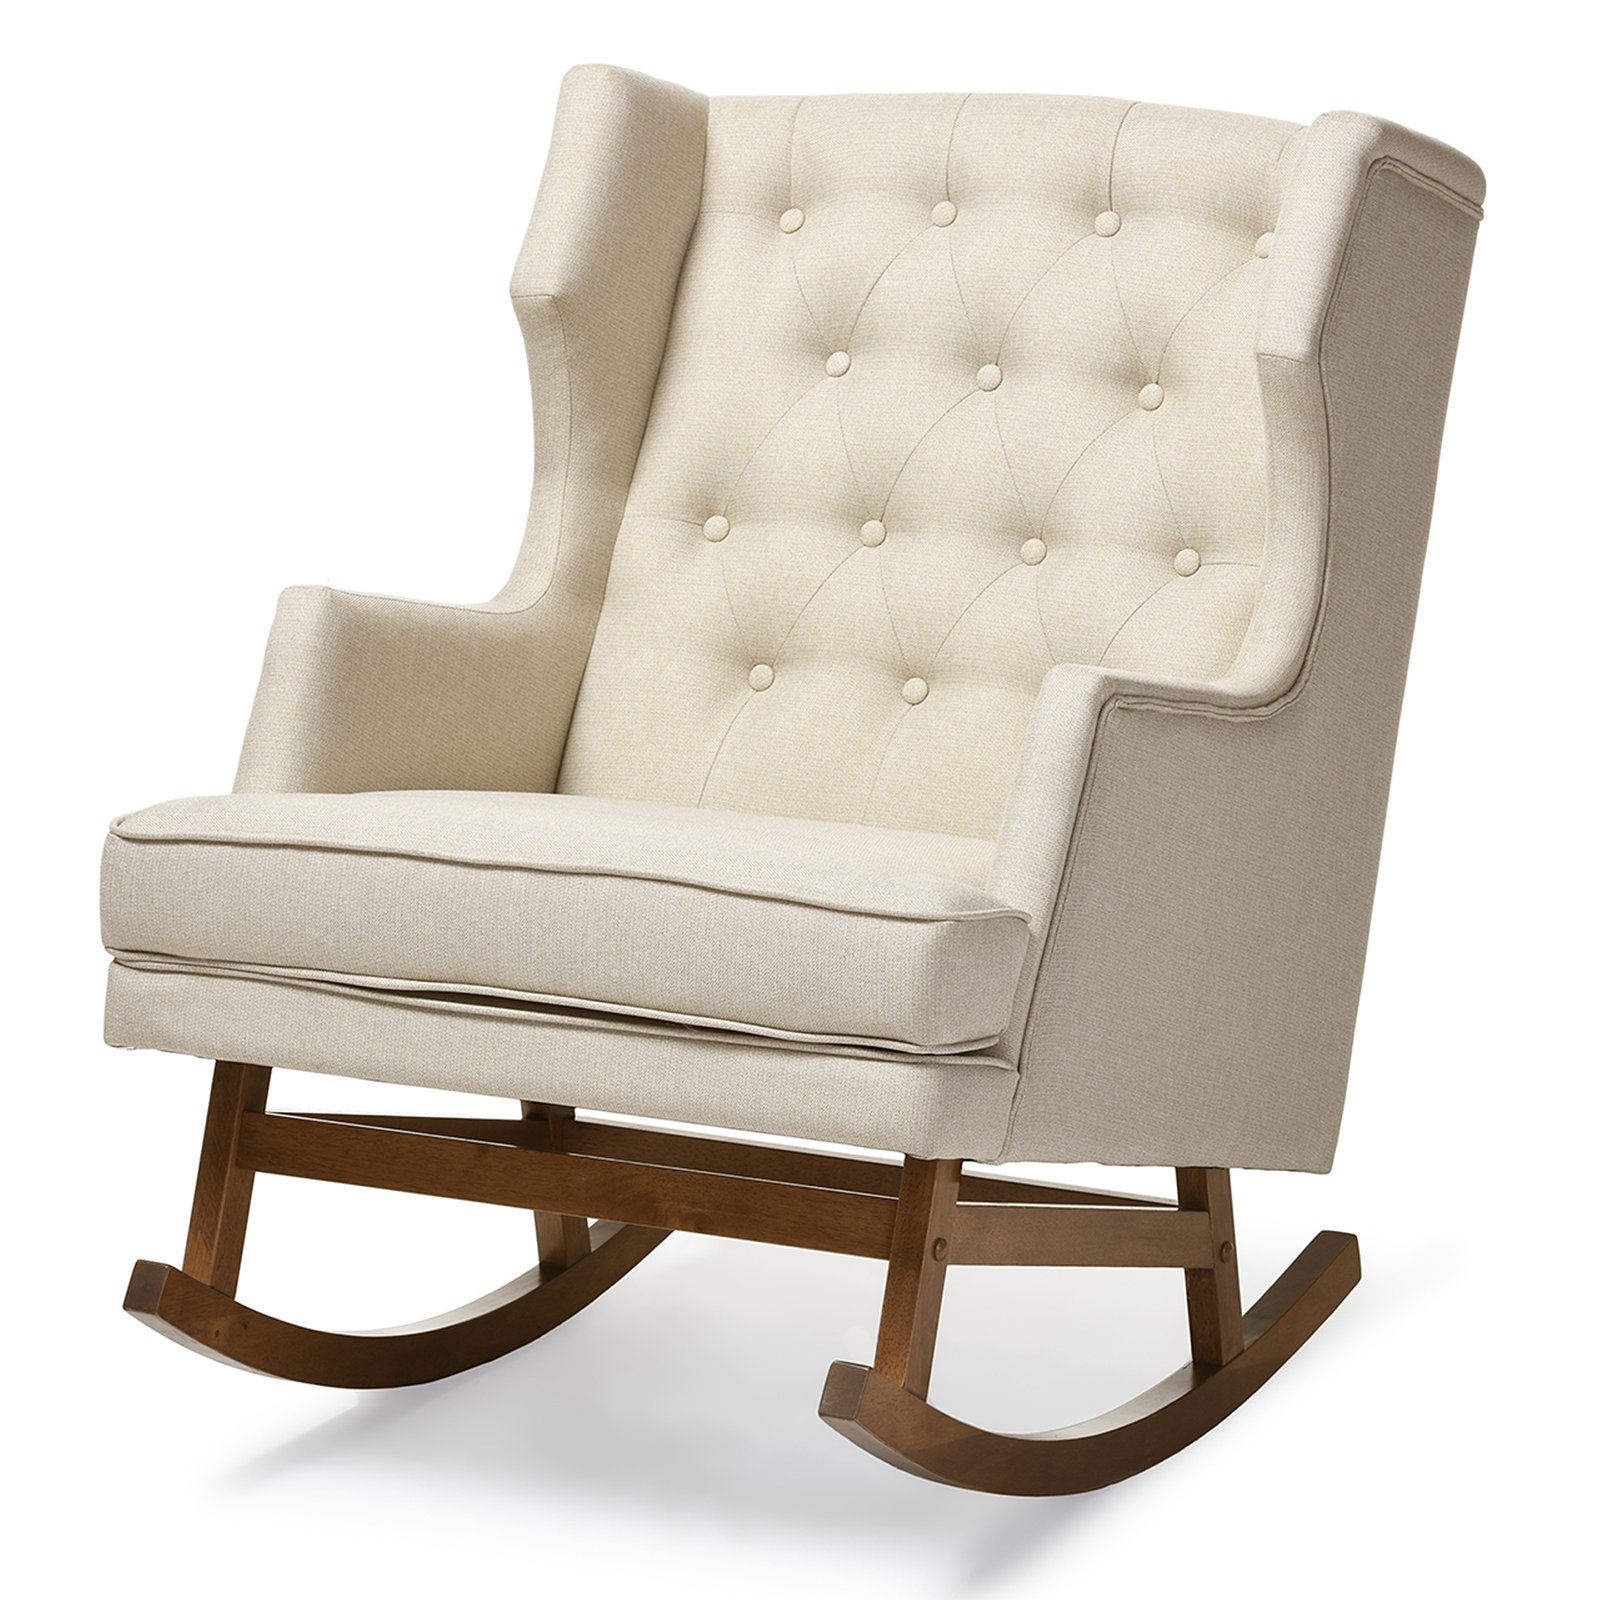 Baxton Studio Iona Mid-century Retro Modern Upholstered Button-tufted Wingback Rocking Chair, Multiple Colors